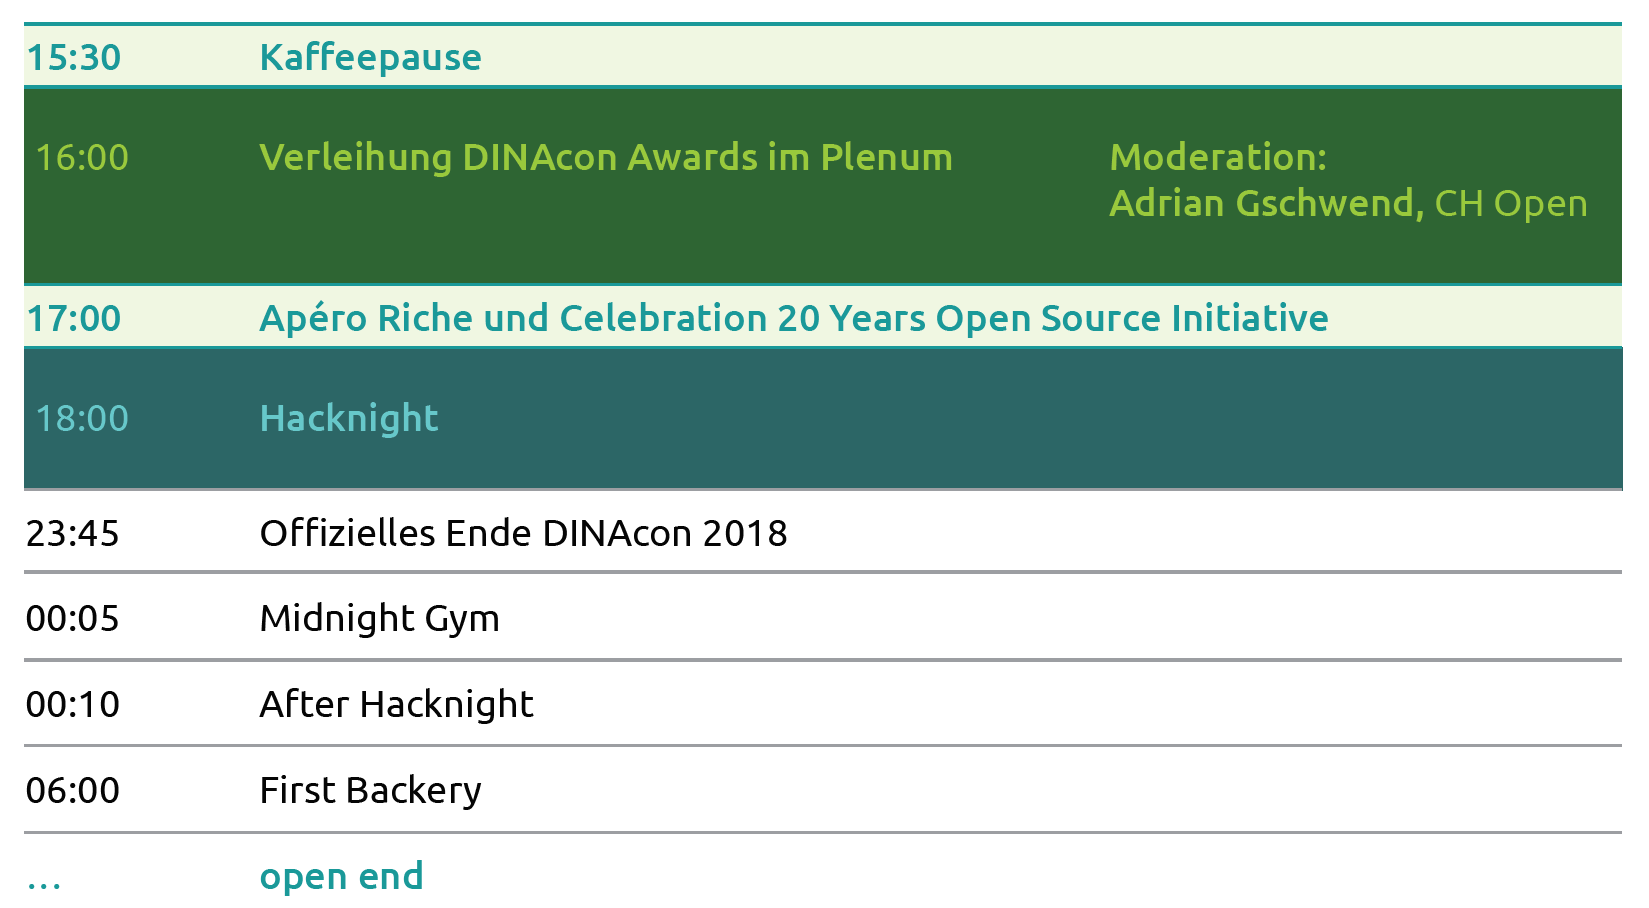 Dinacon-Event in Bern